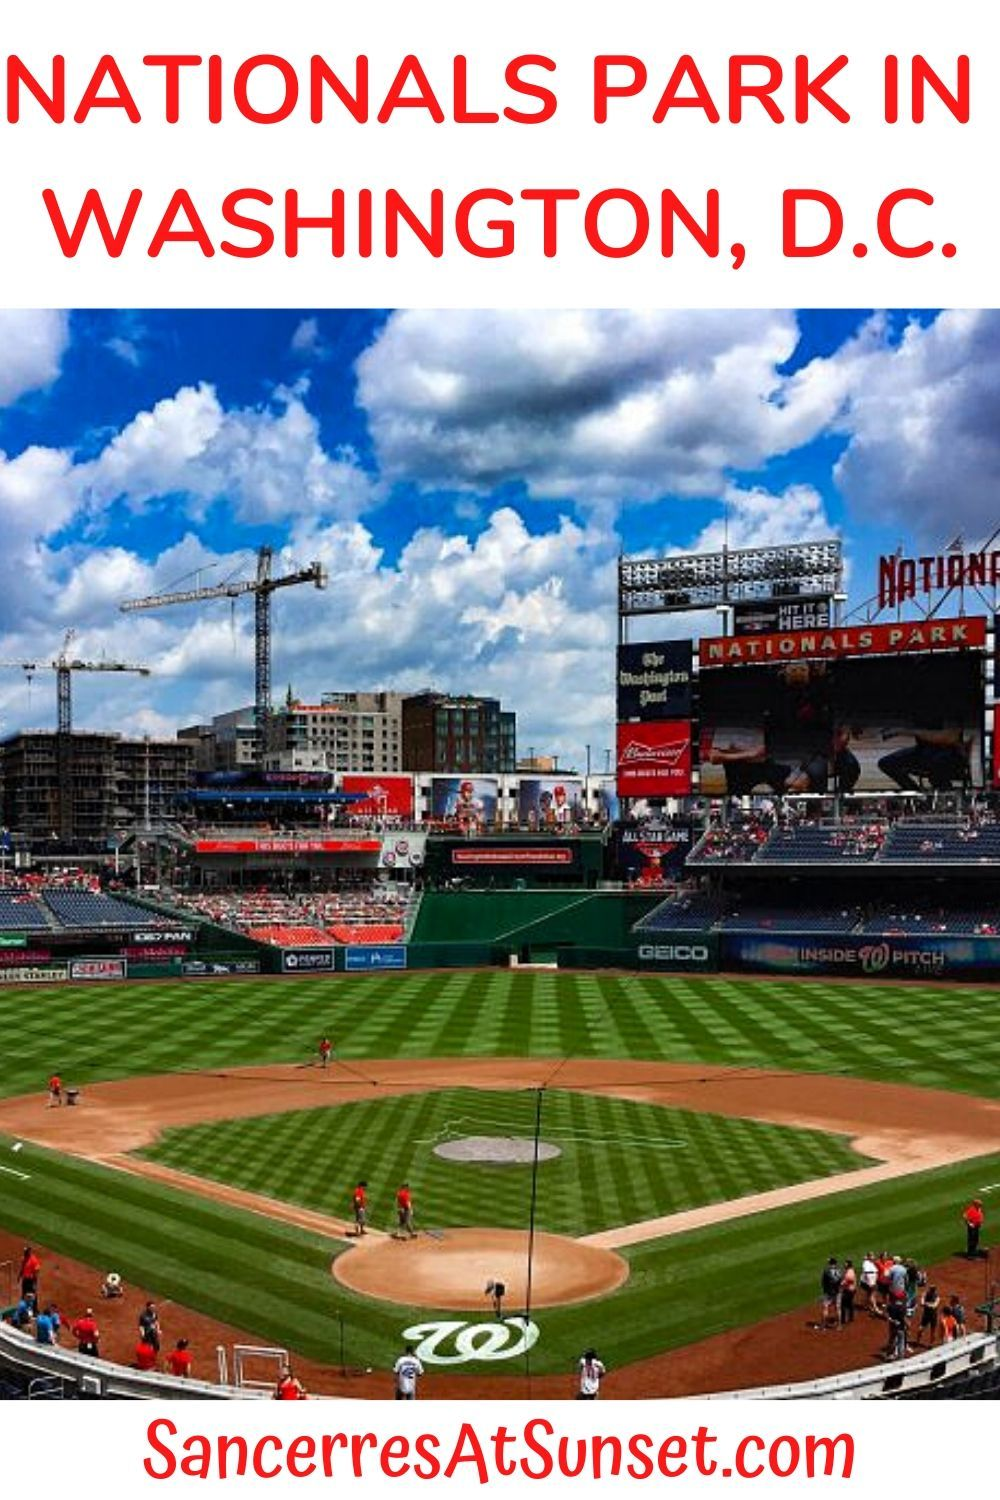 Nationalspark In Washingtondc Is A Modern Baseball Stadium That S Clean And Comfortable By Sports Venue Stan In 2020 Nationals Park Washington Travel Virginia Travel